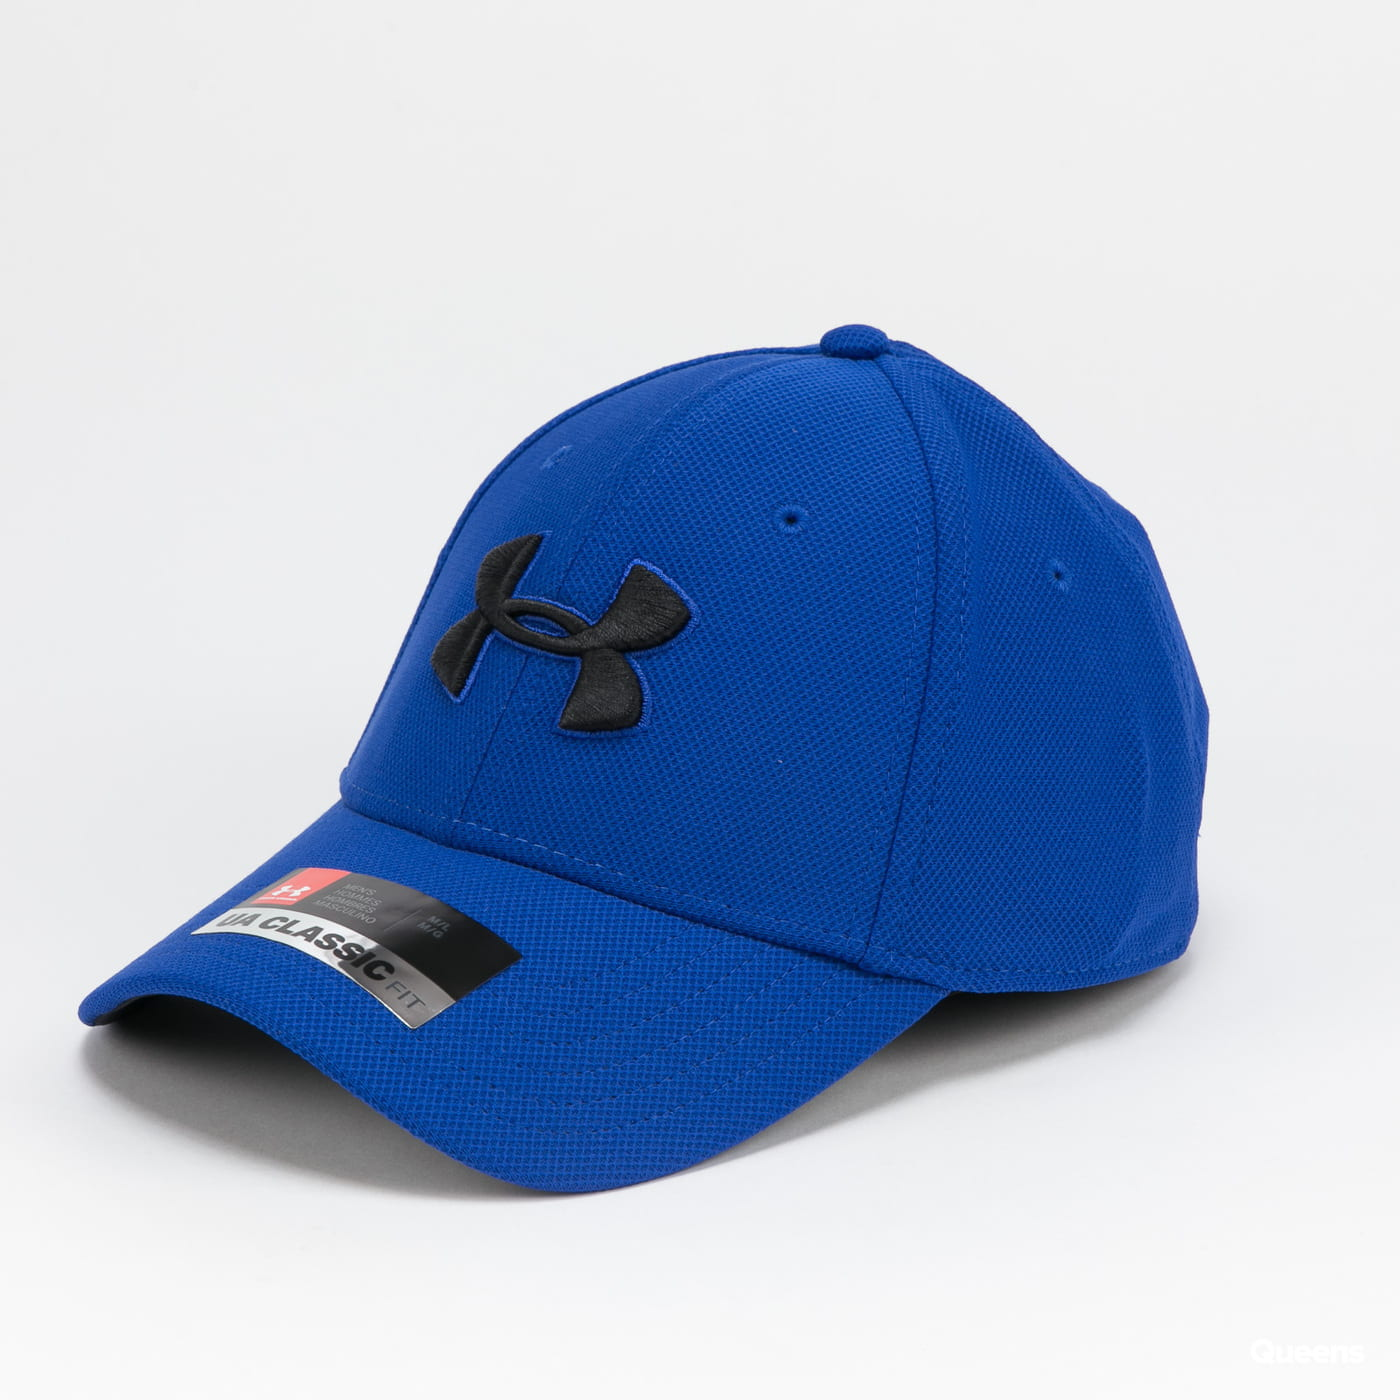 Under Armour Men's Blitzing 3.0 Cap blue / black